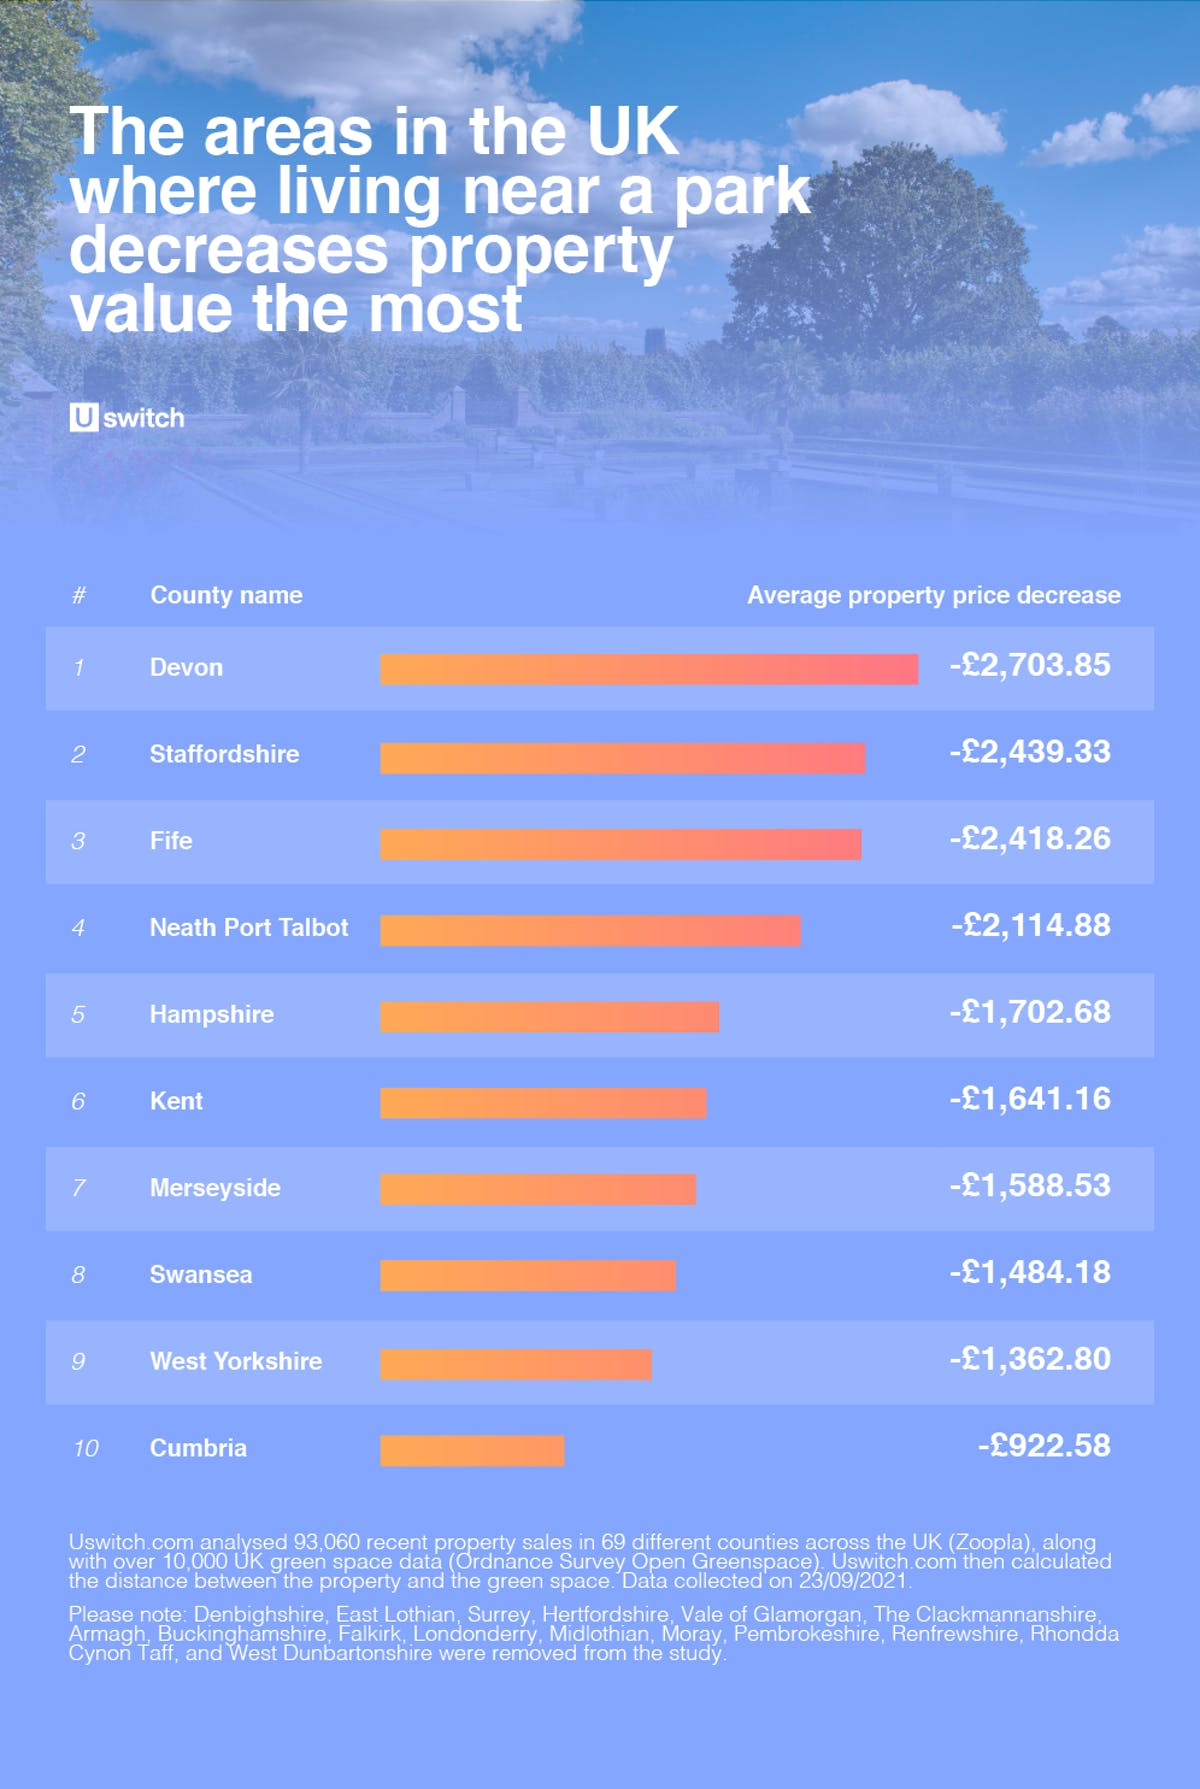 Areas in UK where living near a park decreases value the most